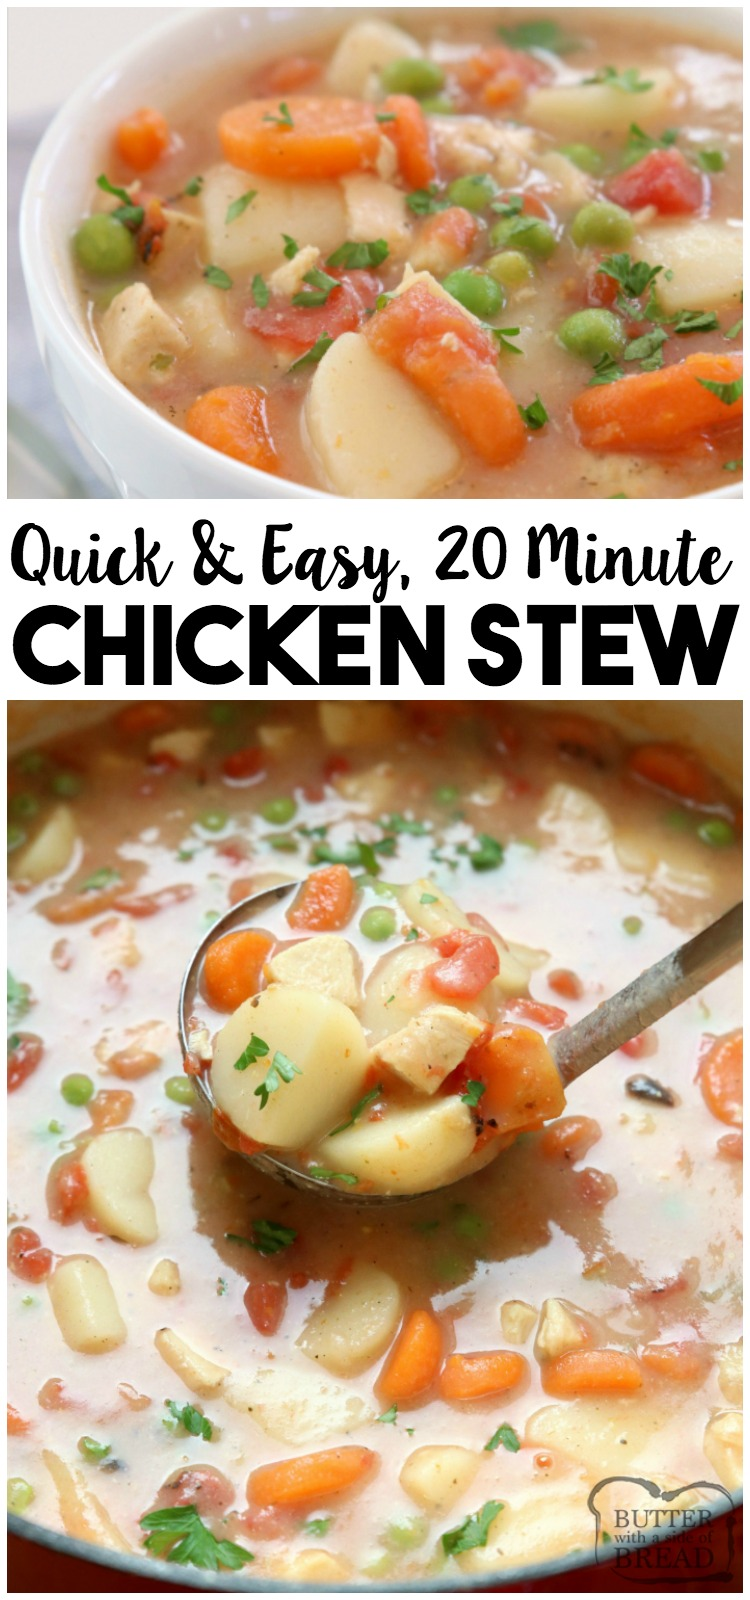 20-Minute Chicken Stew recipe, perfect for busy nights! Hearty stew with tender chicken & vegetables that comes together fast and tastes wonderful.#chicken #stew #recipe #dinner #chickenstew #chickenrecipe #chickendinner #food #comfortfood from BUTTER WITH A SIDE OF BREAD